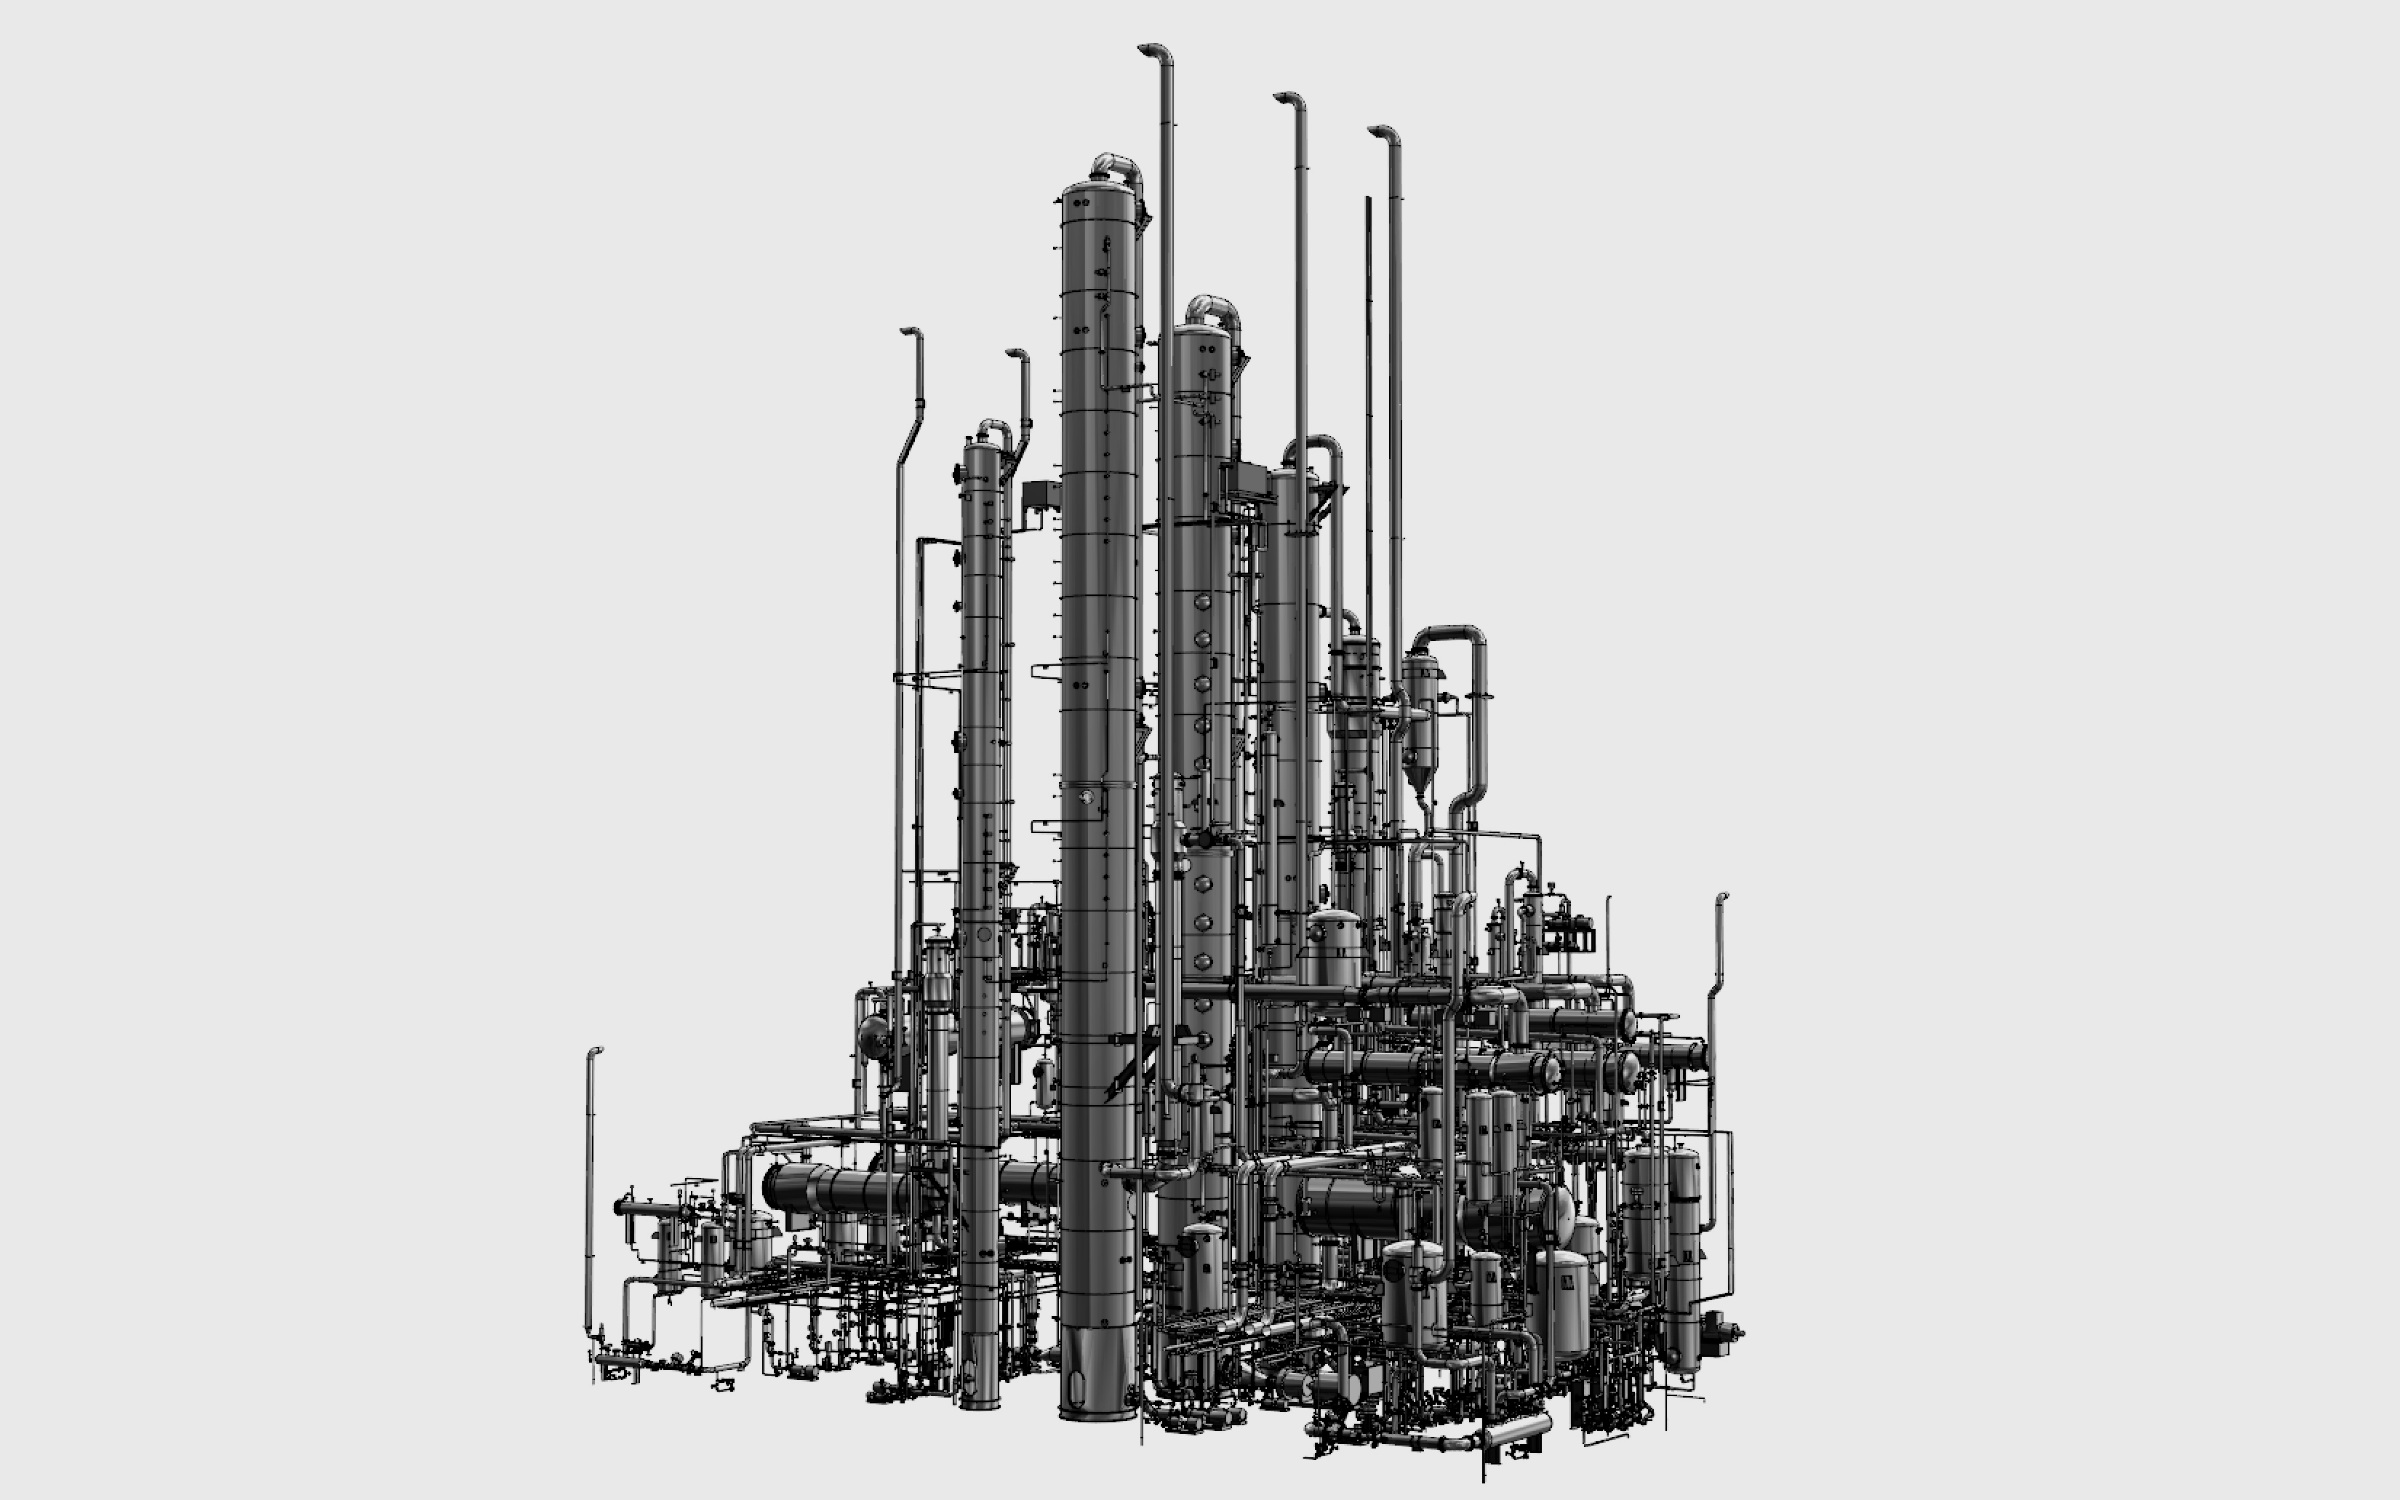 GEA distillation plant